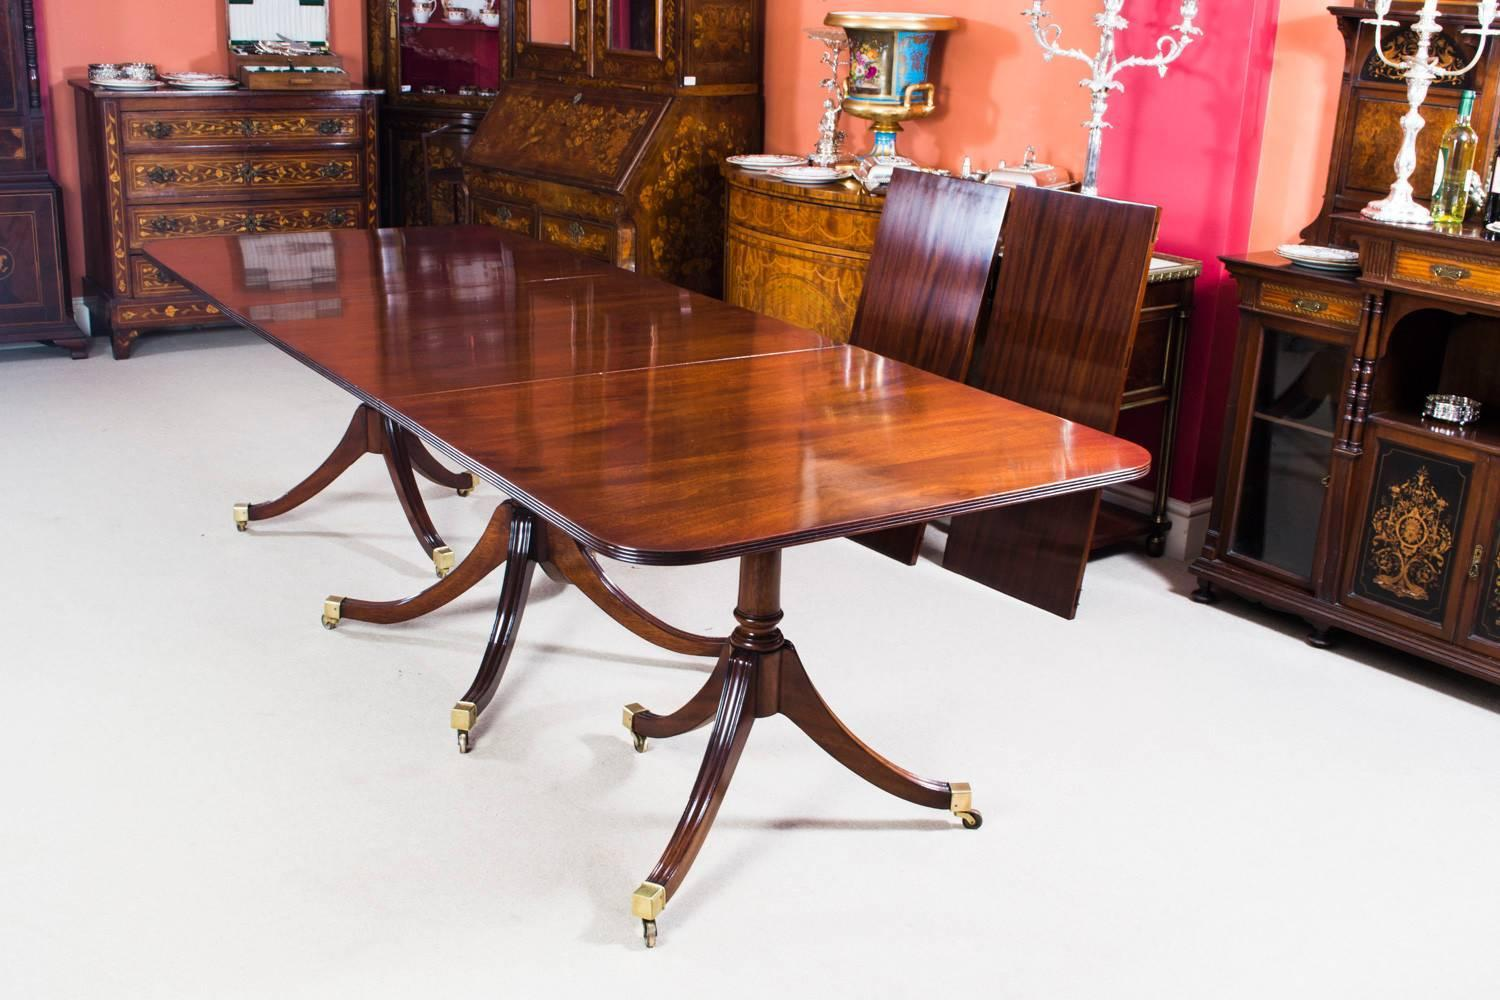 Set Of 3 Wooden Tables: Antique Regency Three-Pillar Dining Table And Ten Chairs